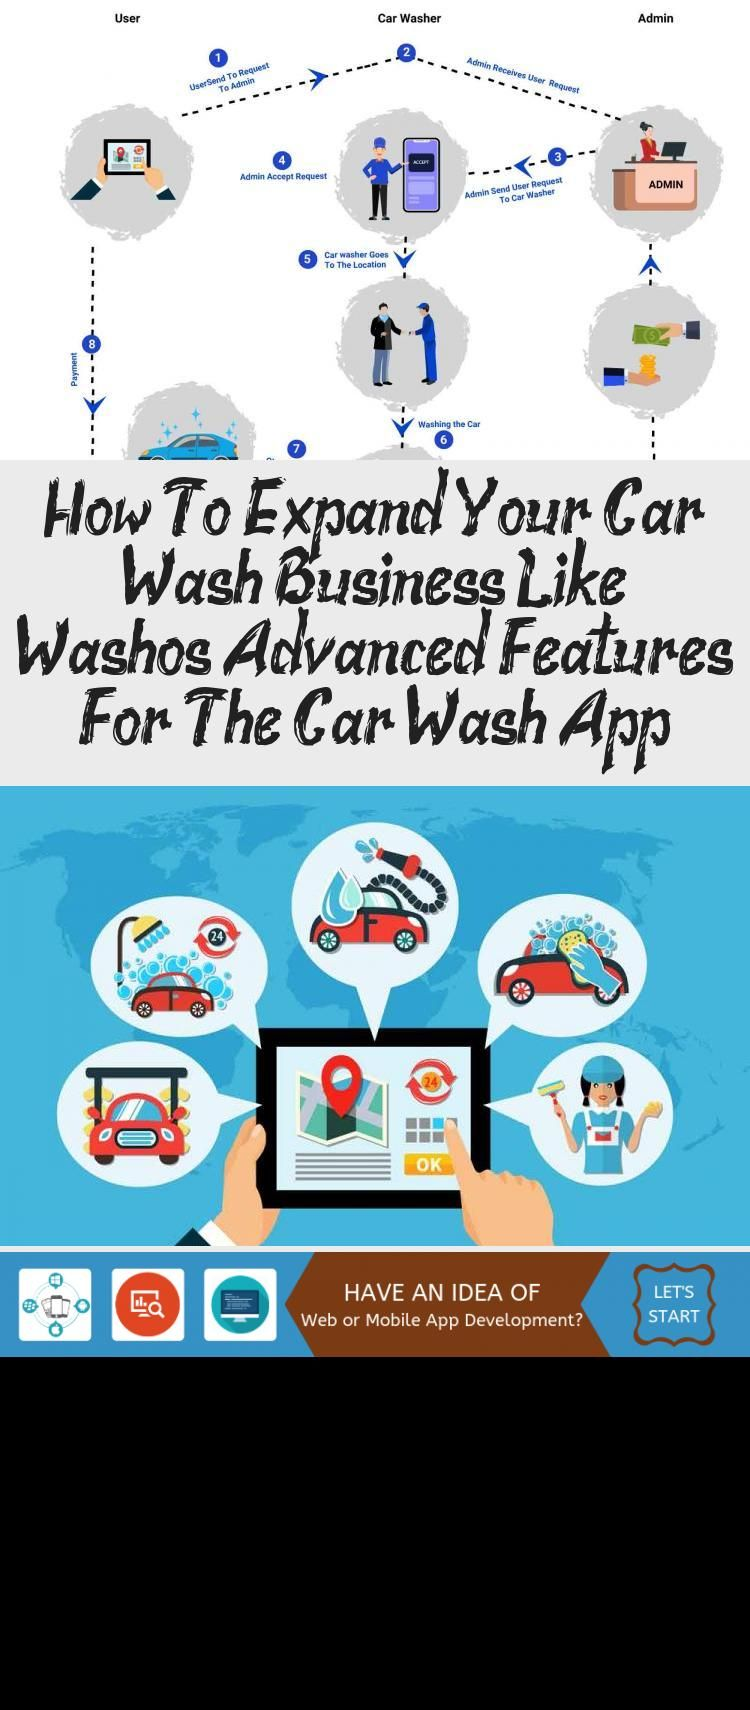 How To Expand Your Car Wash Business Like Washos Advanced Features For The Car Wash App Technology In 2020 Car Wash Business Car Wash App Technology